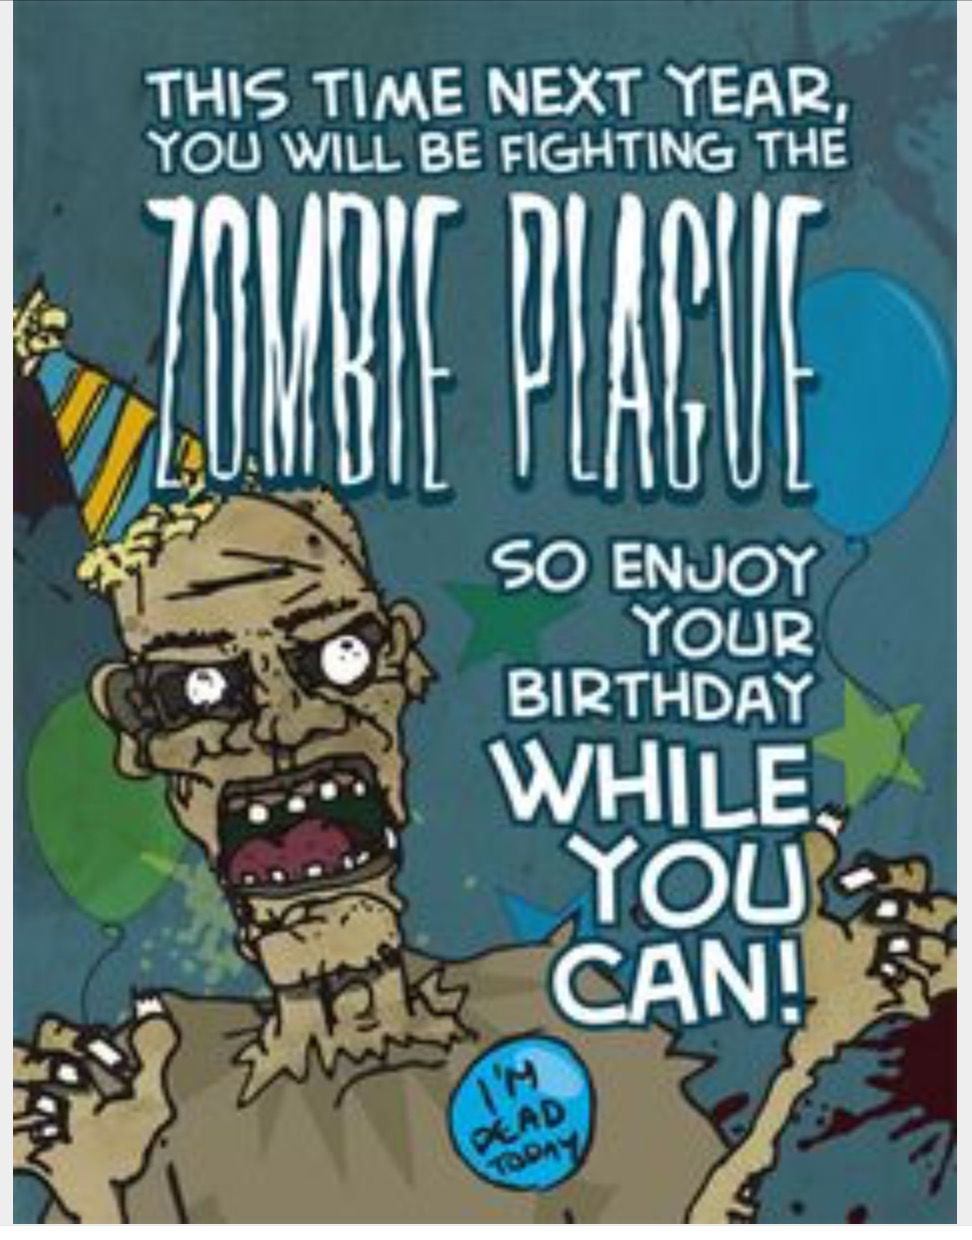 Pin by k w on birthday wishes pinterest birthdays zombie plague birthday card with envelope kristyandbryce Choice Image